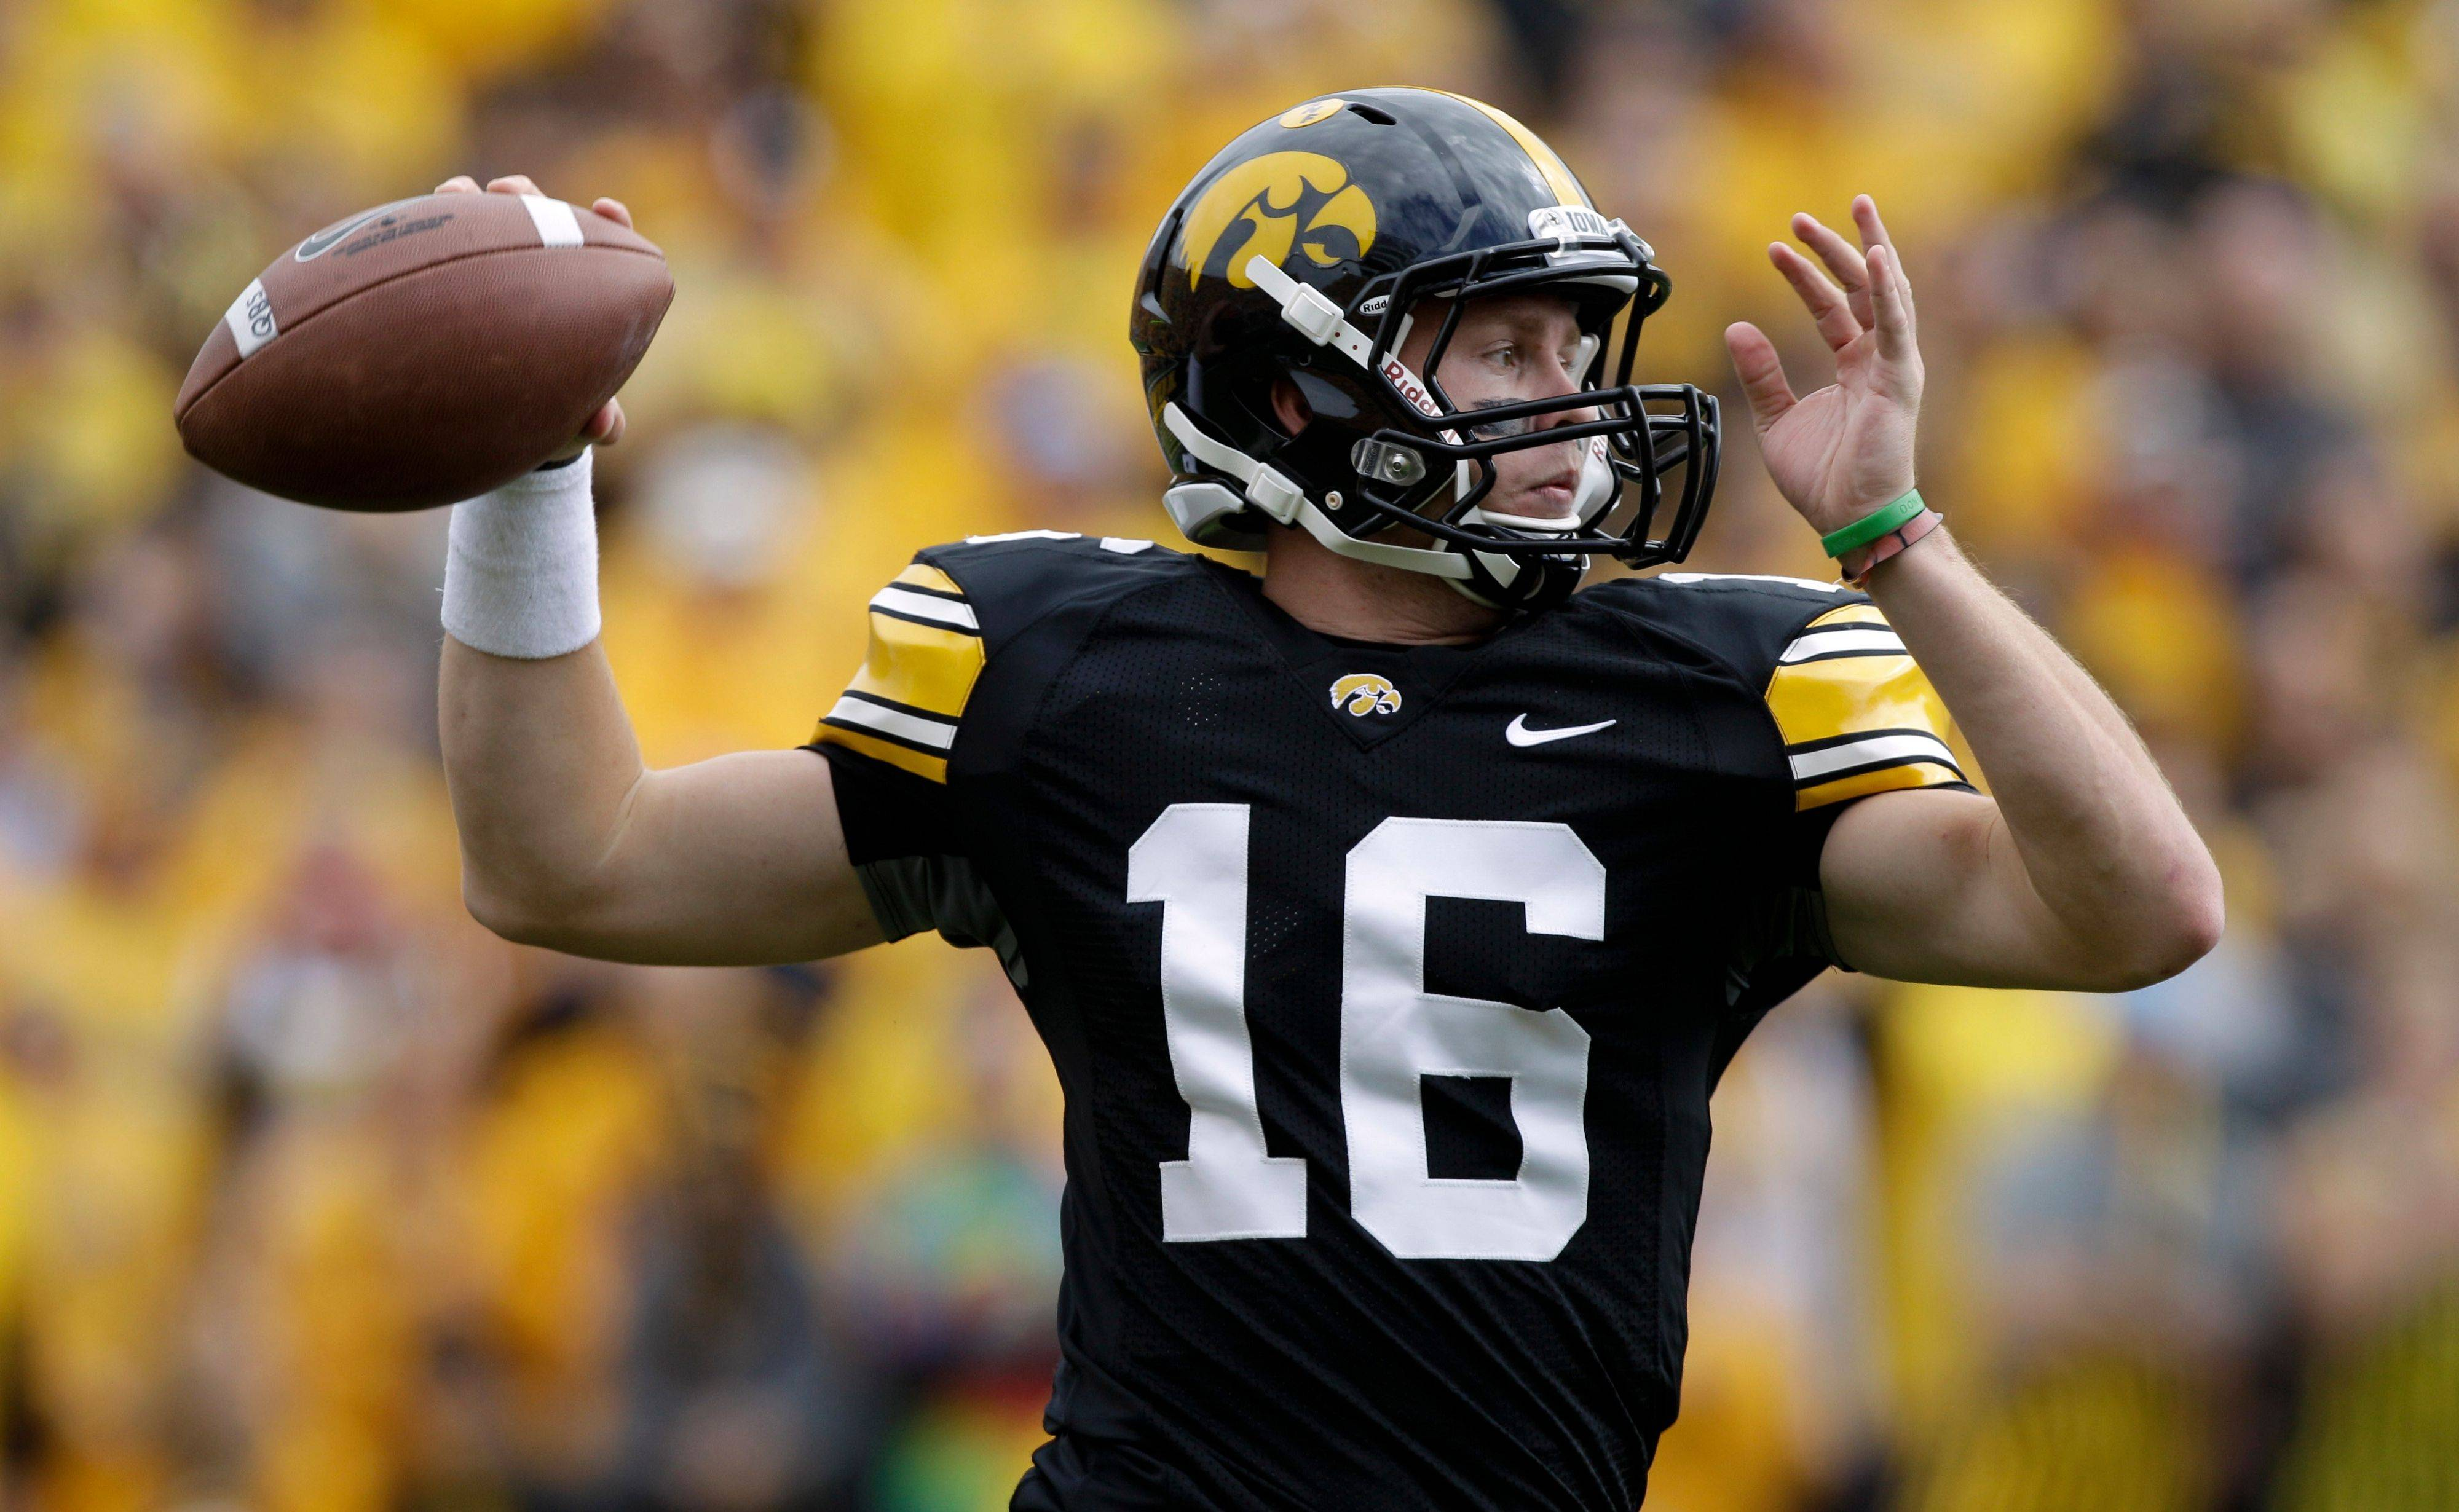 Iowa quarterback James Vandenberg threw for 399 yards in the Hawkeyes 31-27 win.